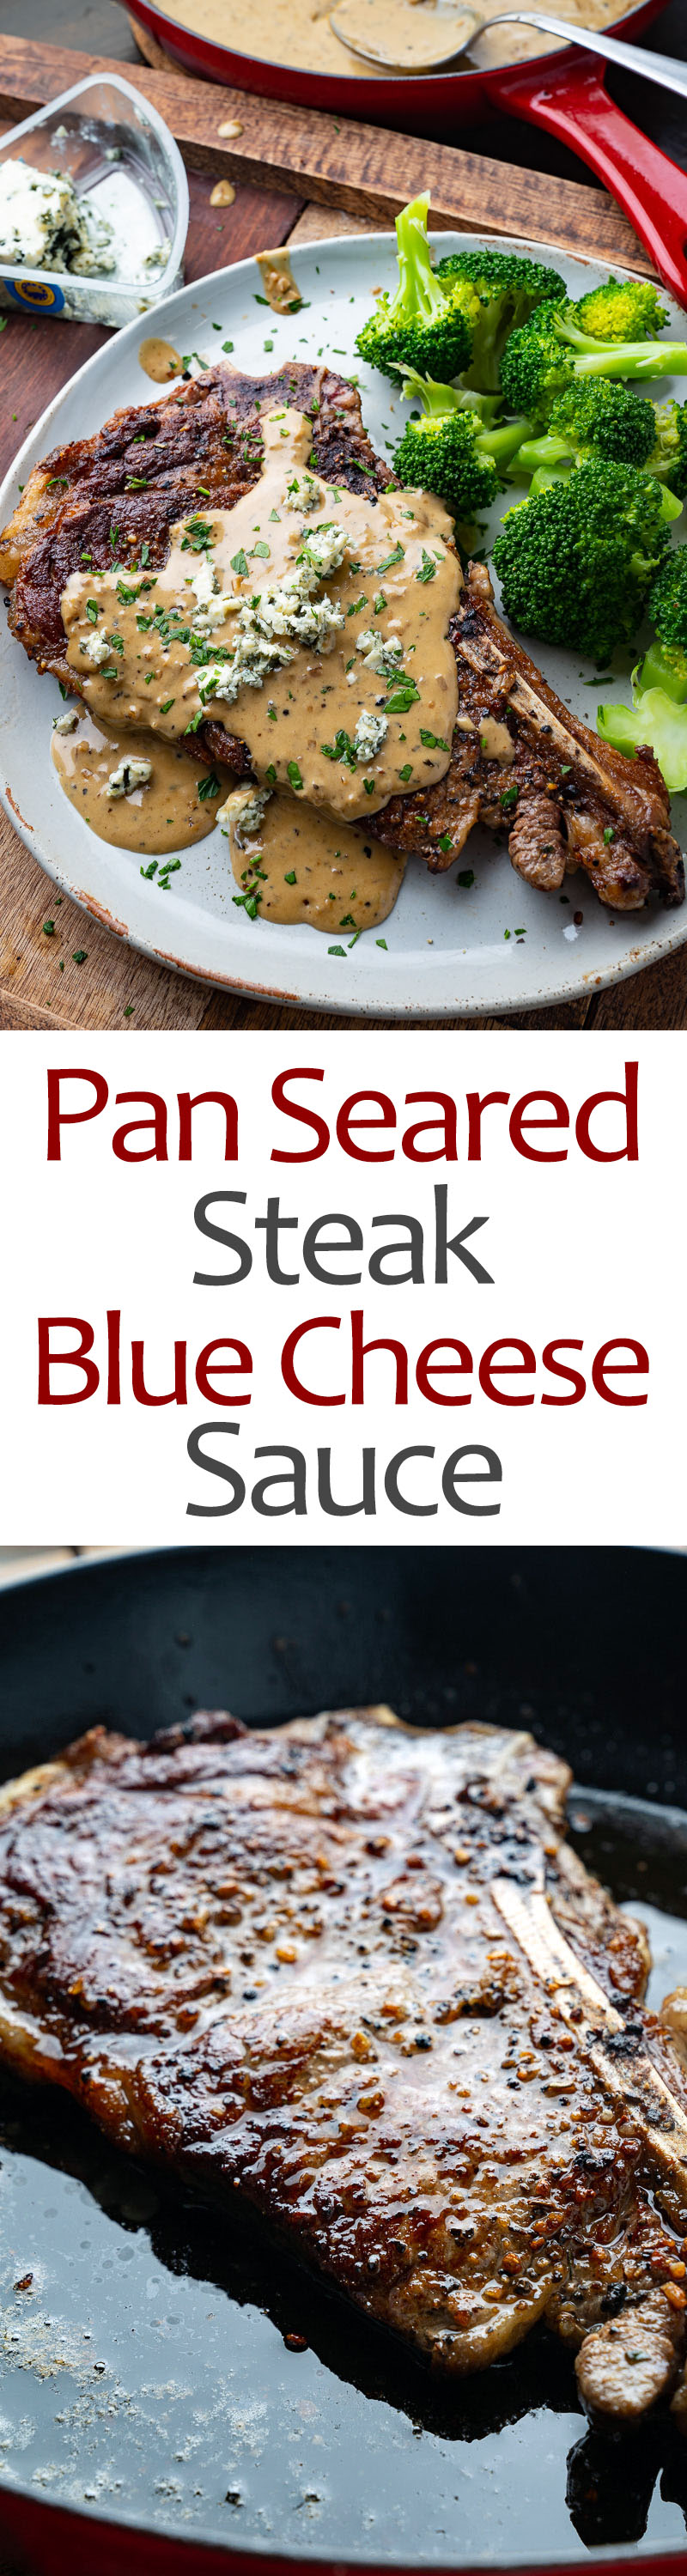 Pan Seared Steak in Blue Cheese Sauce